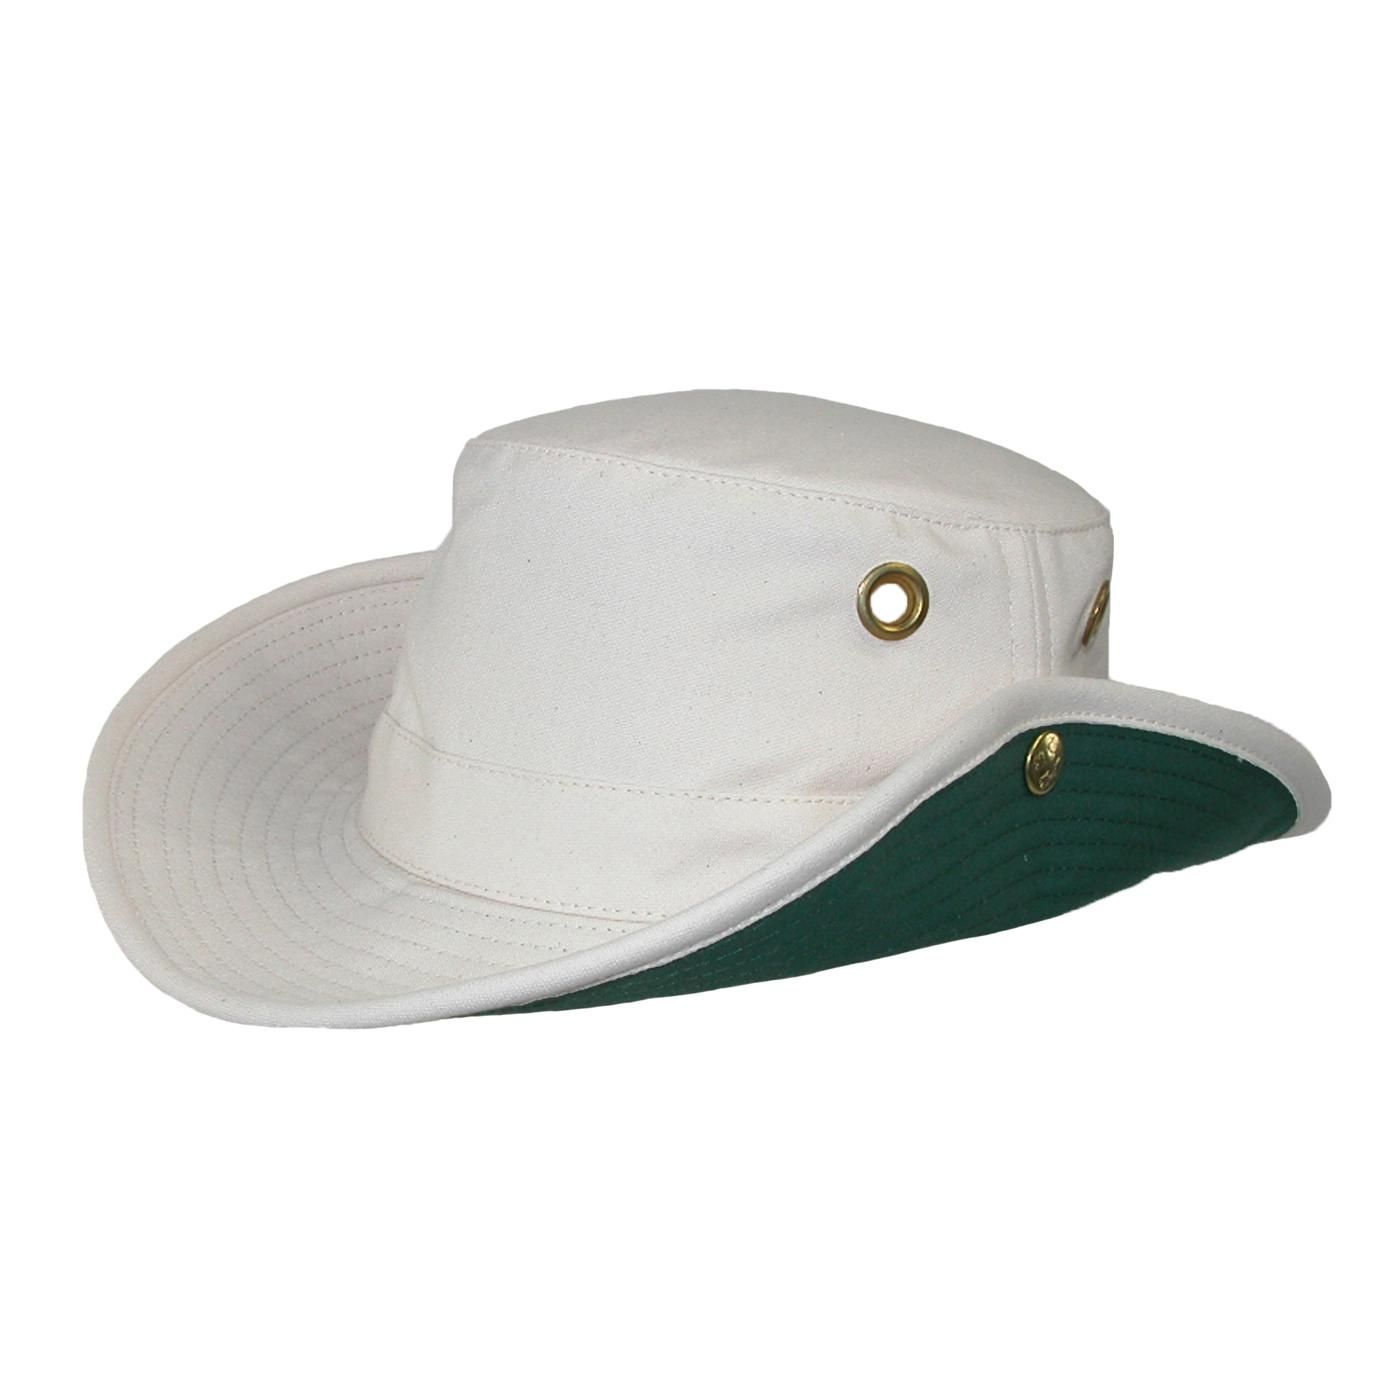 f56fdb3833b18 Special  Free First Class Mail shipping when you order any Tilley hat.  Enter coupon code